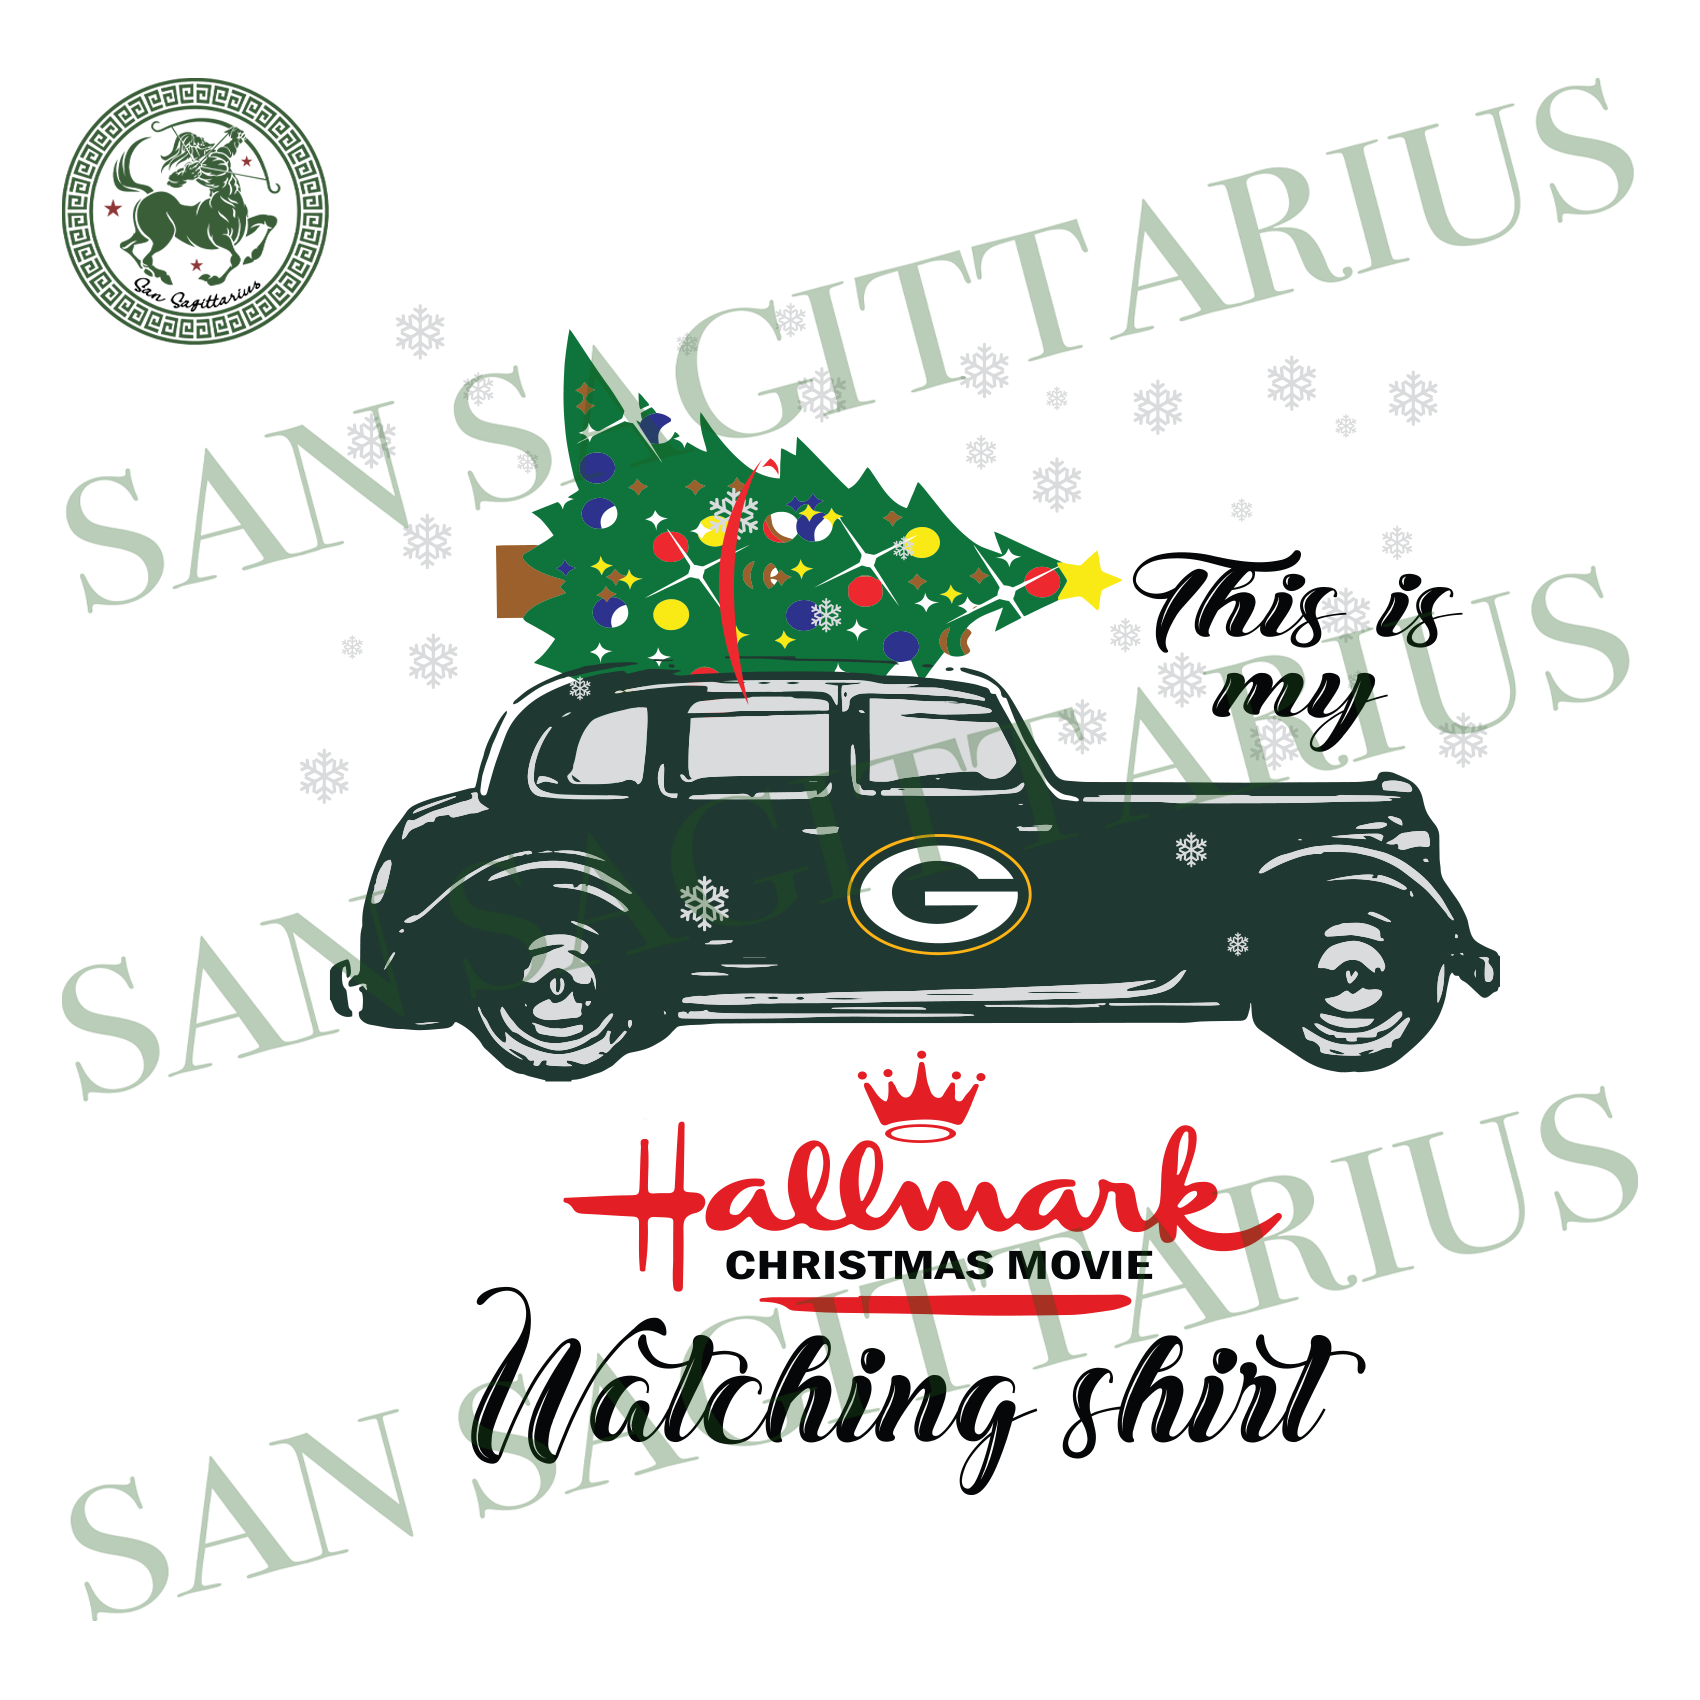 Green Bay Packers This Is My Hallmark Christmas Movie Watching Shirt, Sport Svg, Christmas Svg, Green Bay Packers Svg, NFL Sport Svg, Green Bay Packers NFL Svg, Green Bay Packers NFL Gift, Fo